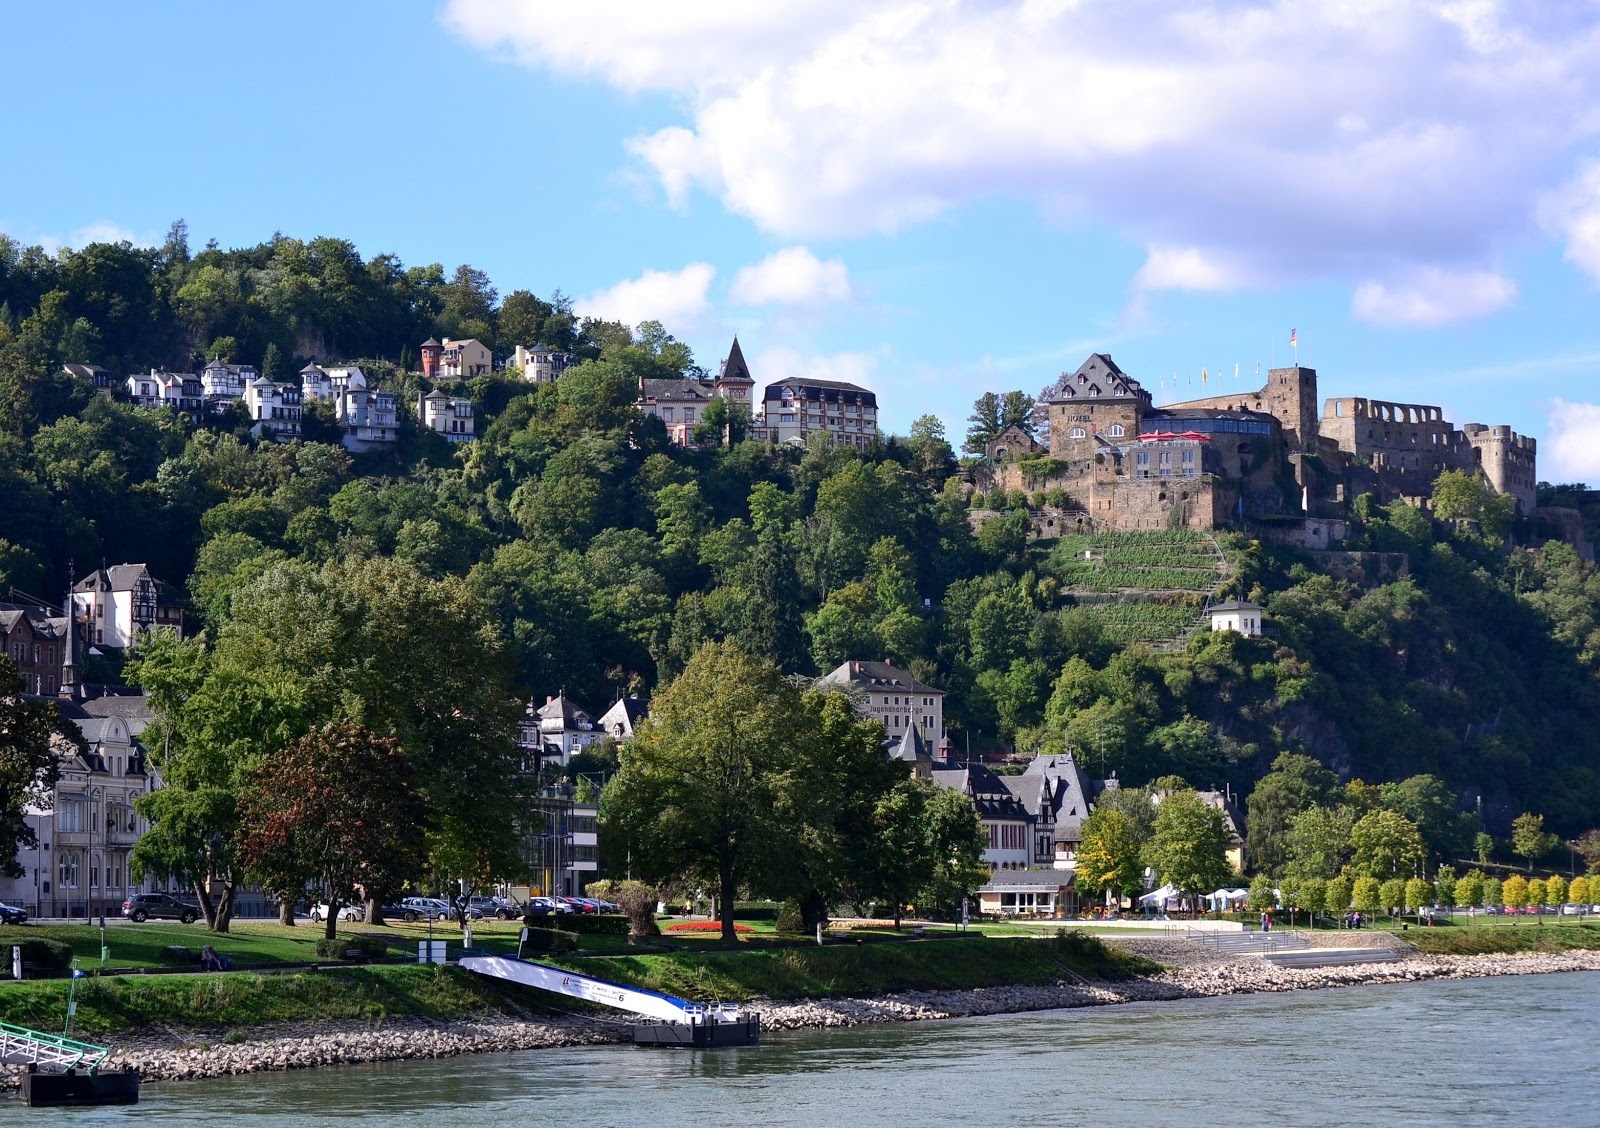 Saint Goar with Rheinfels Castle rising above the village in the background.